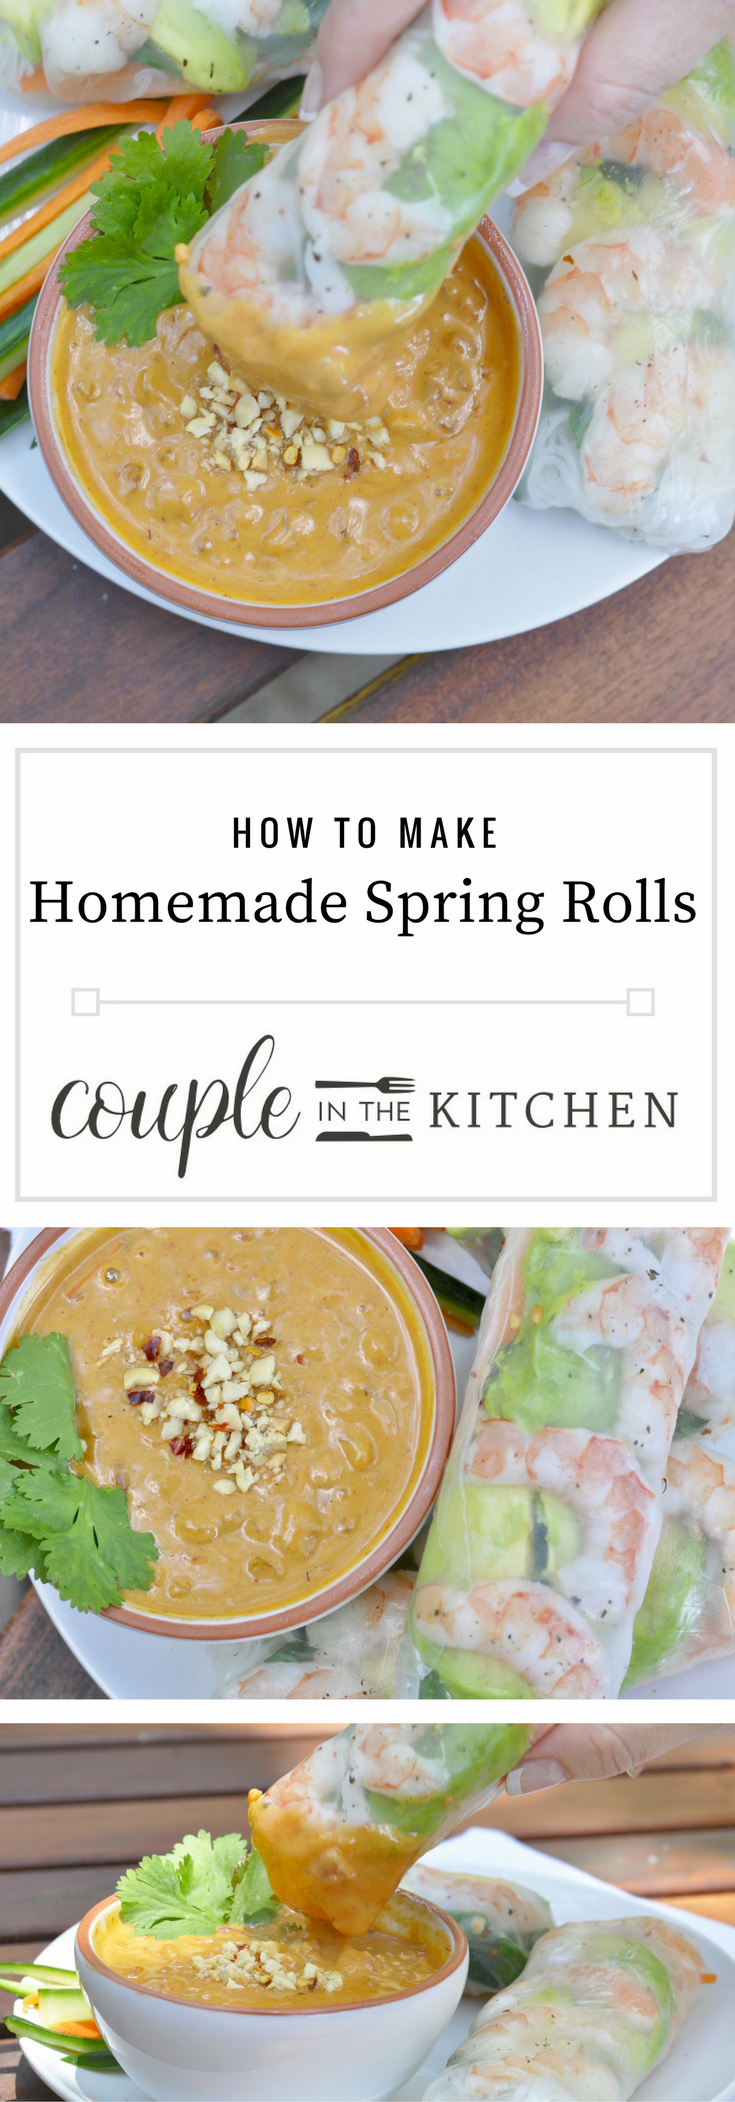 How to Make Spring Rolls | coupleinthekitchen.com